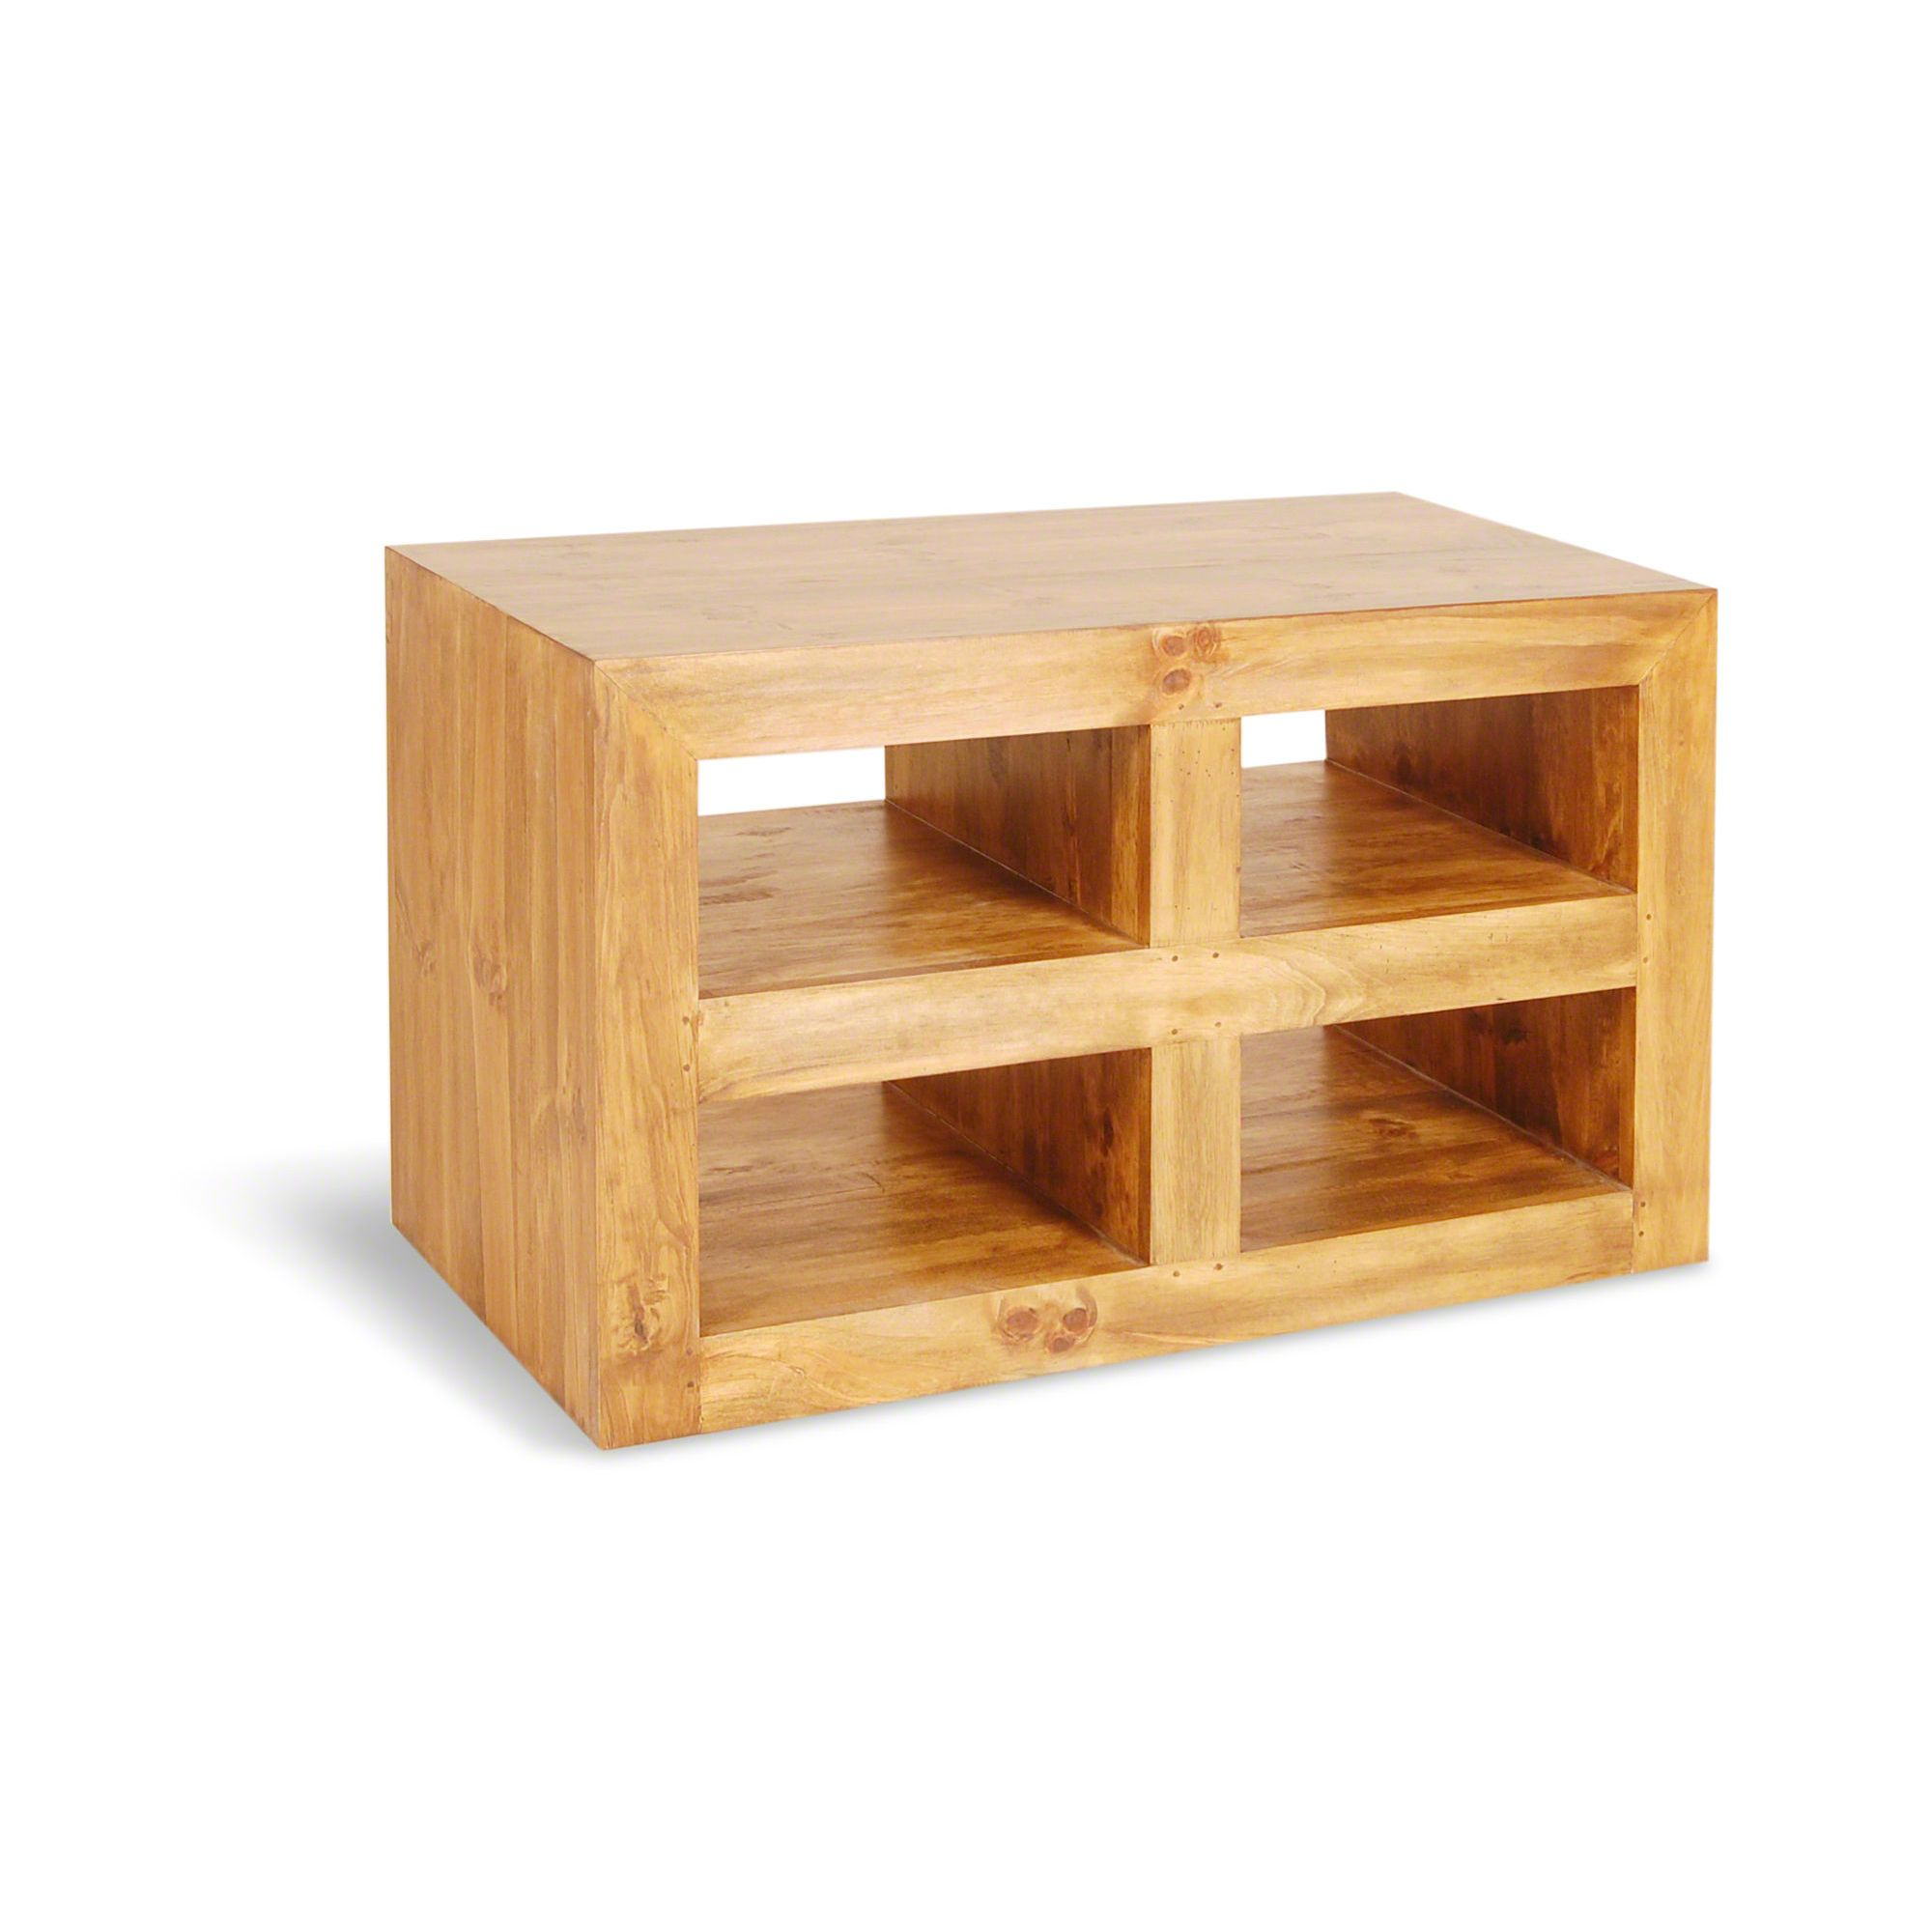 Oceans Apart New York Four Hole Coffee Table at Tesco Direct